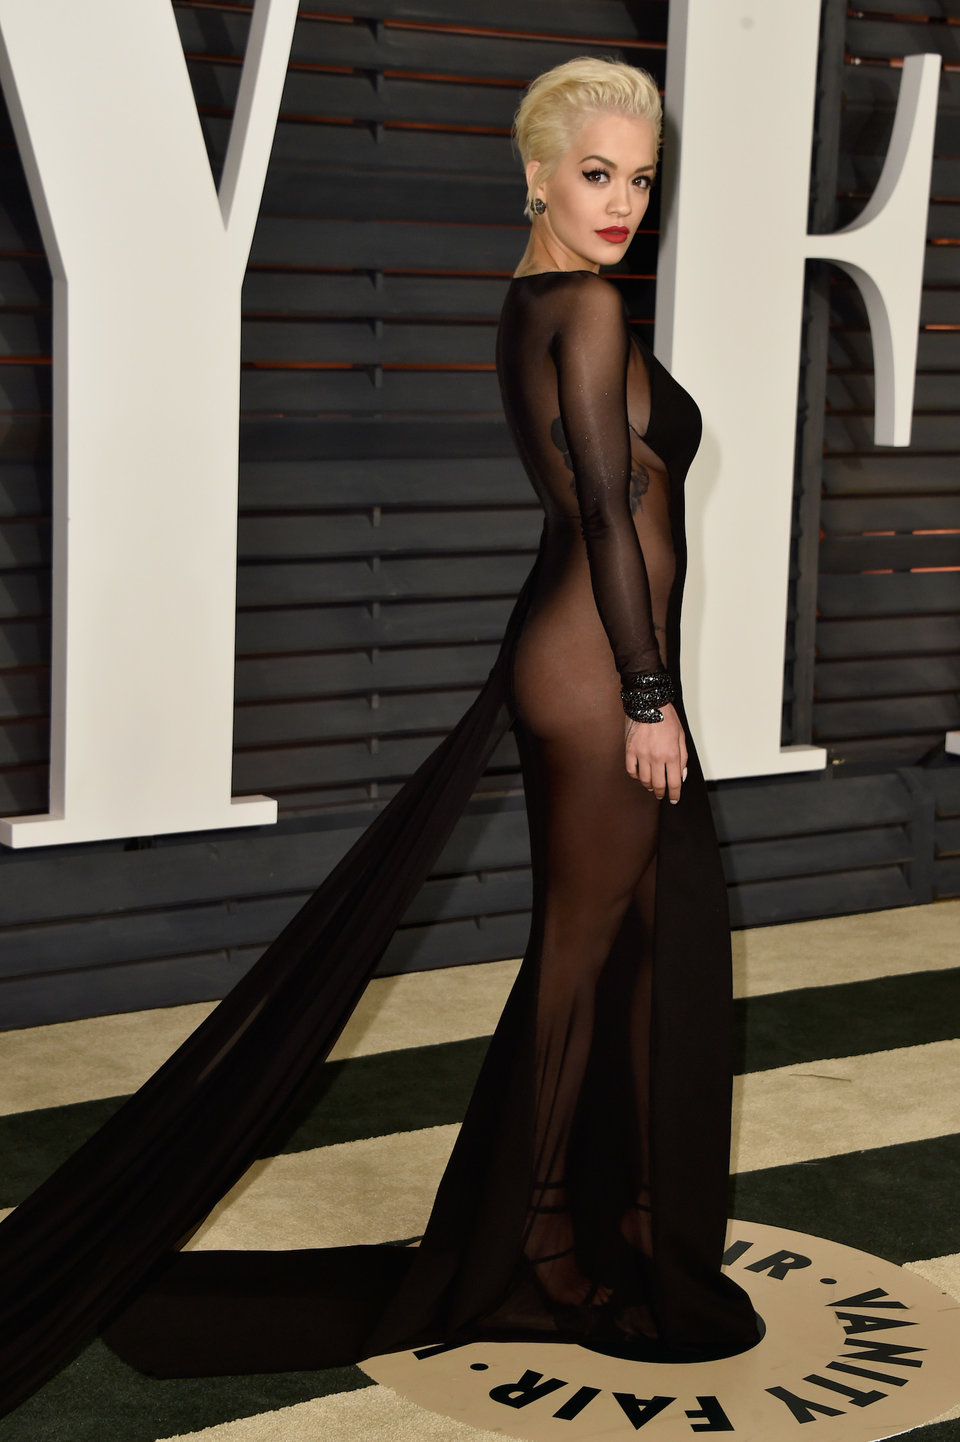 singer rita ora made waves at the 2015 vanity fair oscar party in her take on the black mesh gown